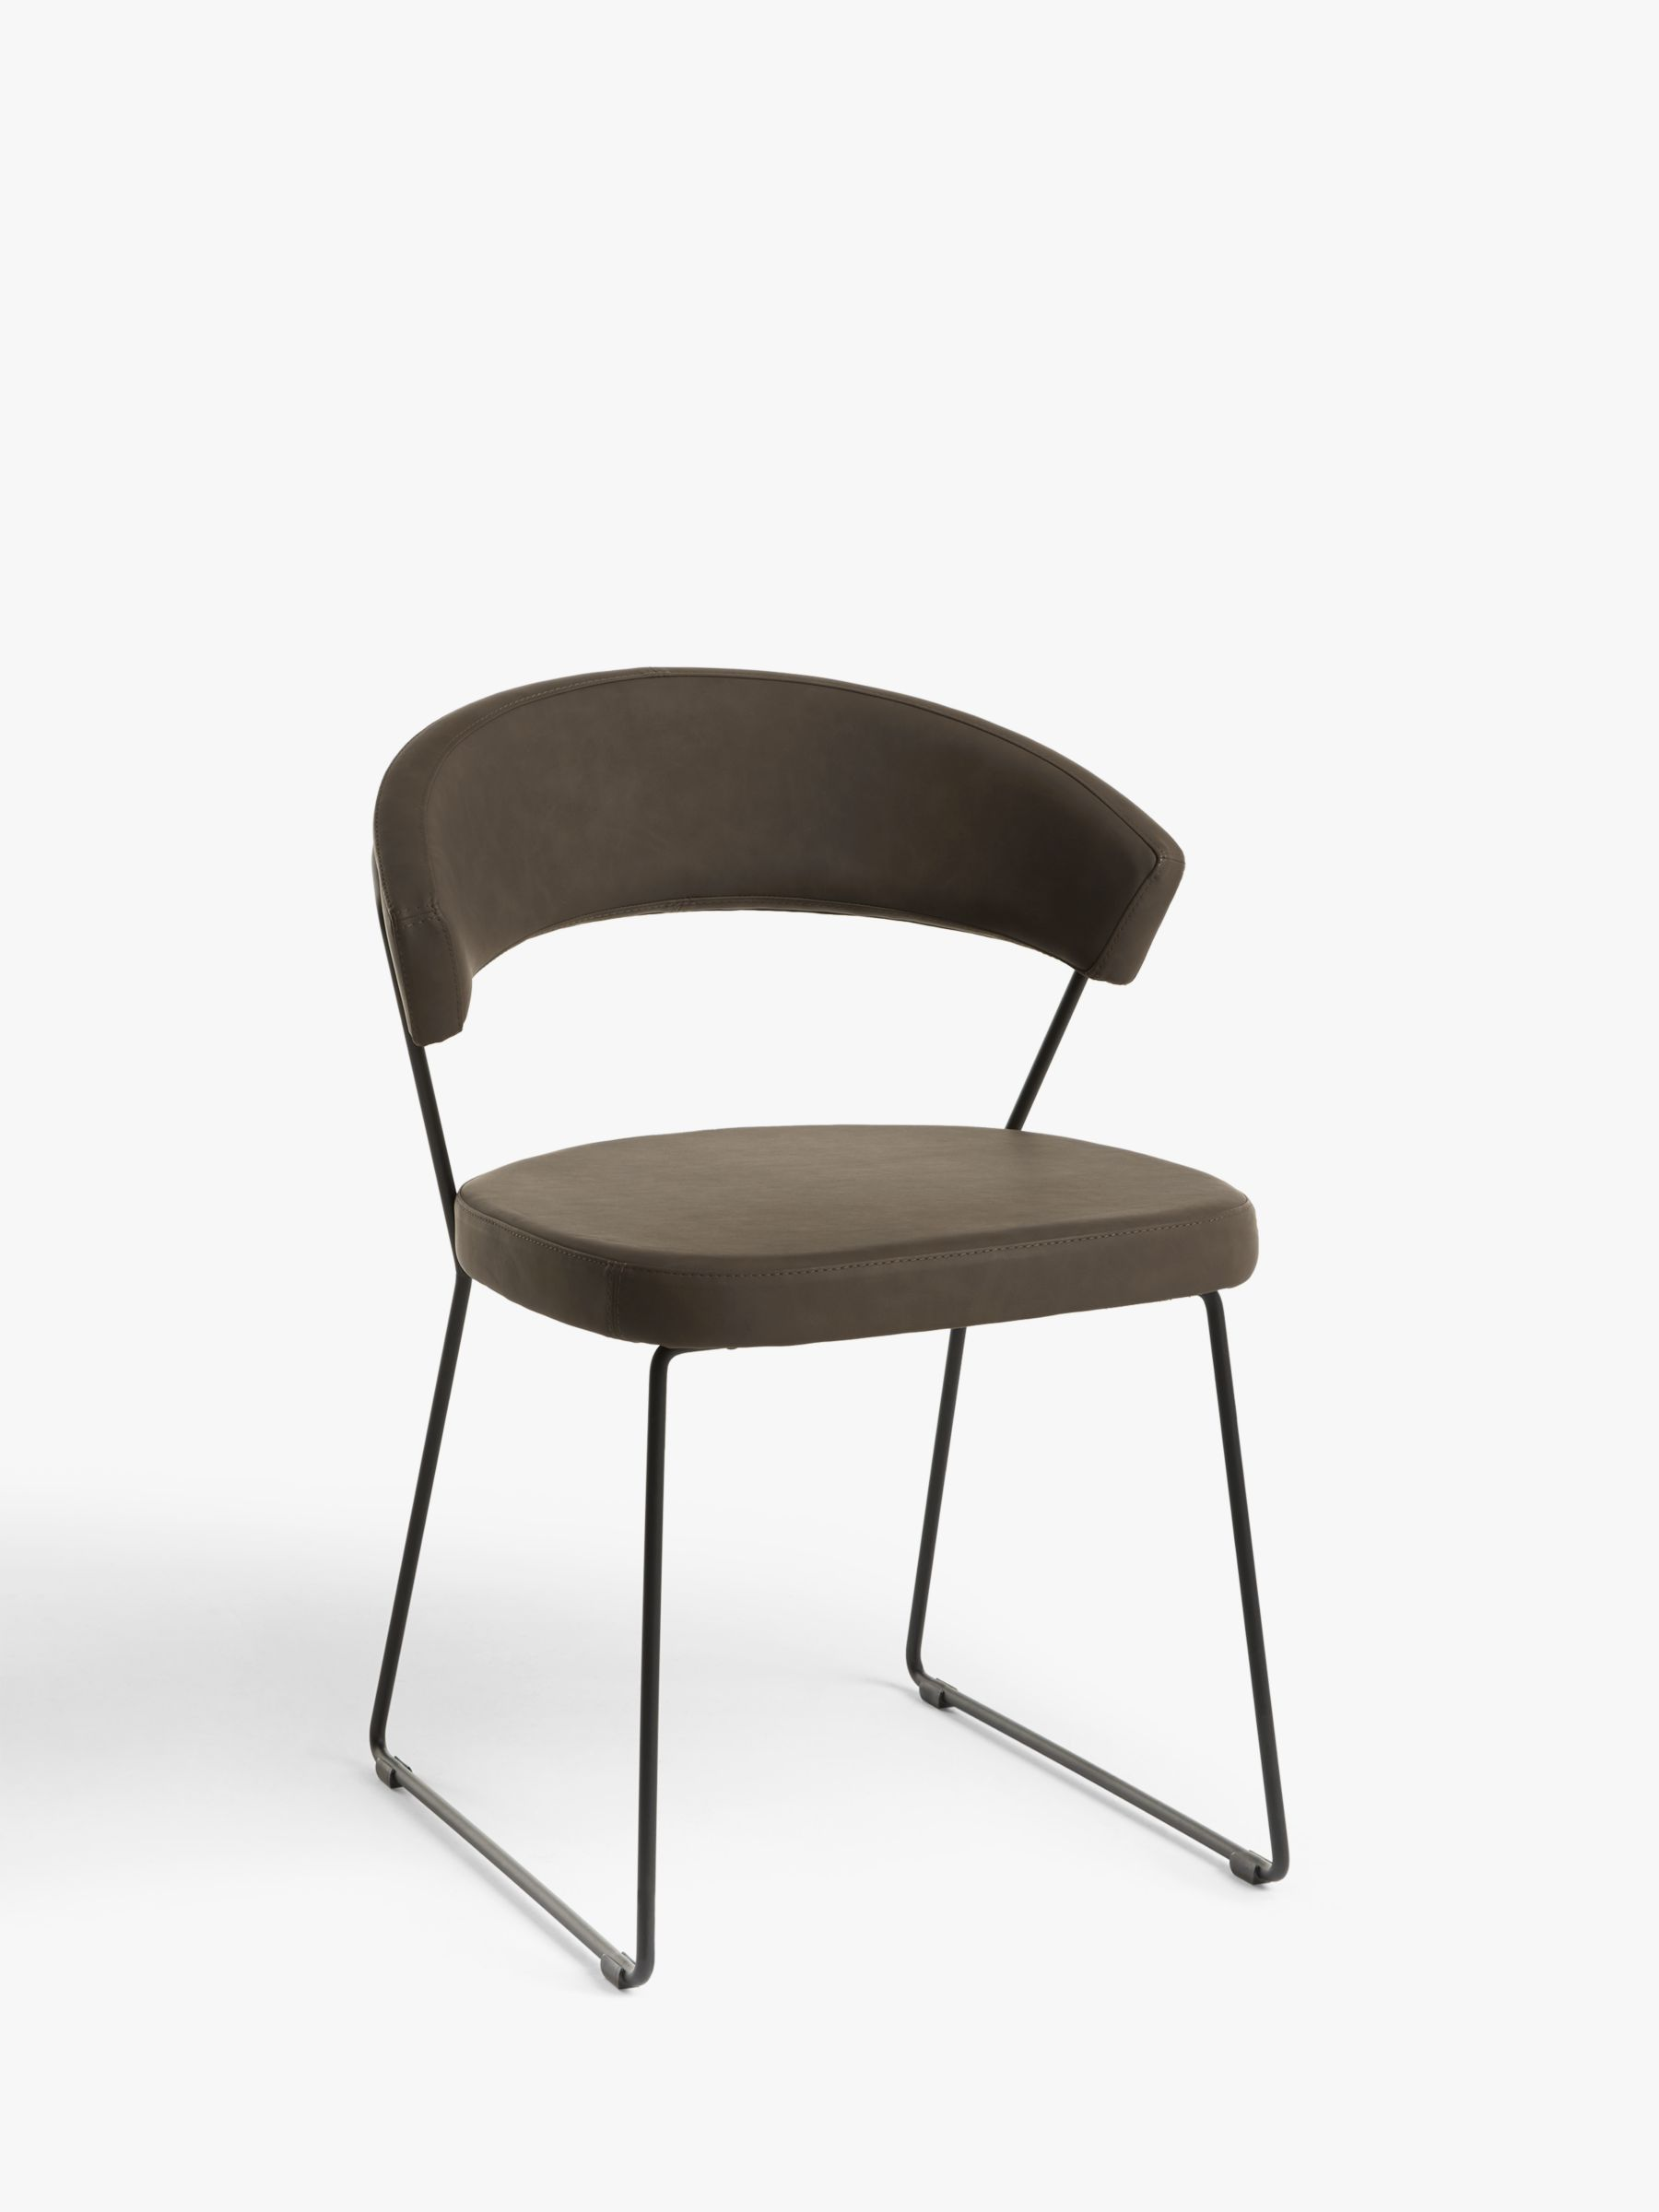 Calligaris Dining Chairs Connubia By Calligaris New York Faux Leather Dining Chair At John